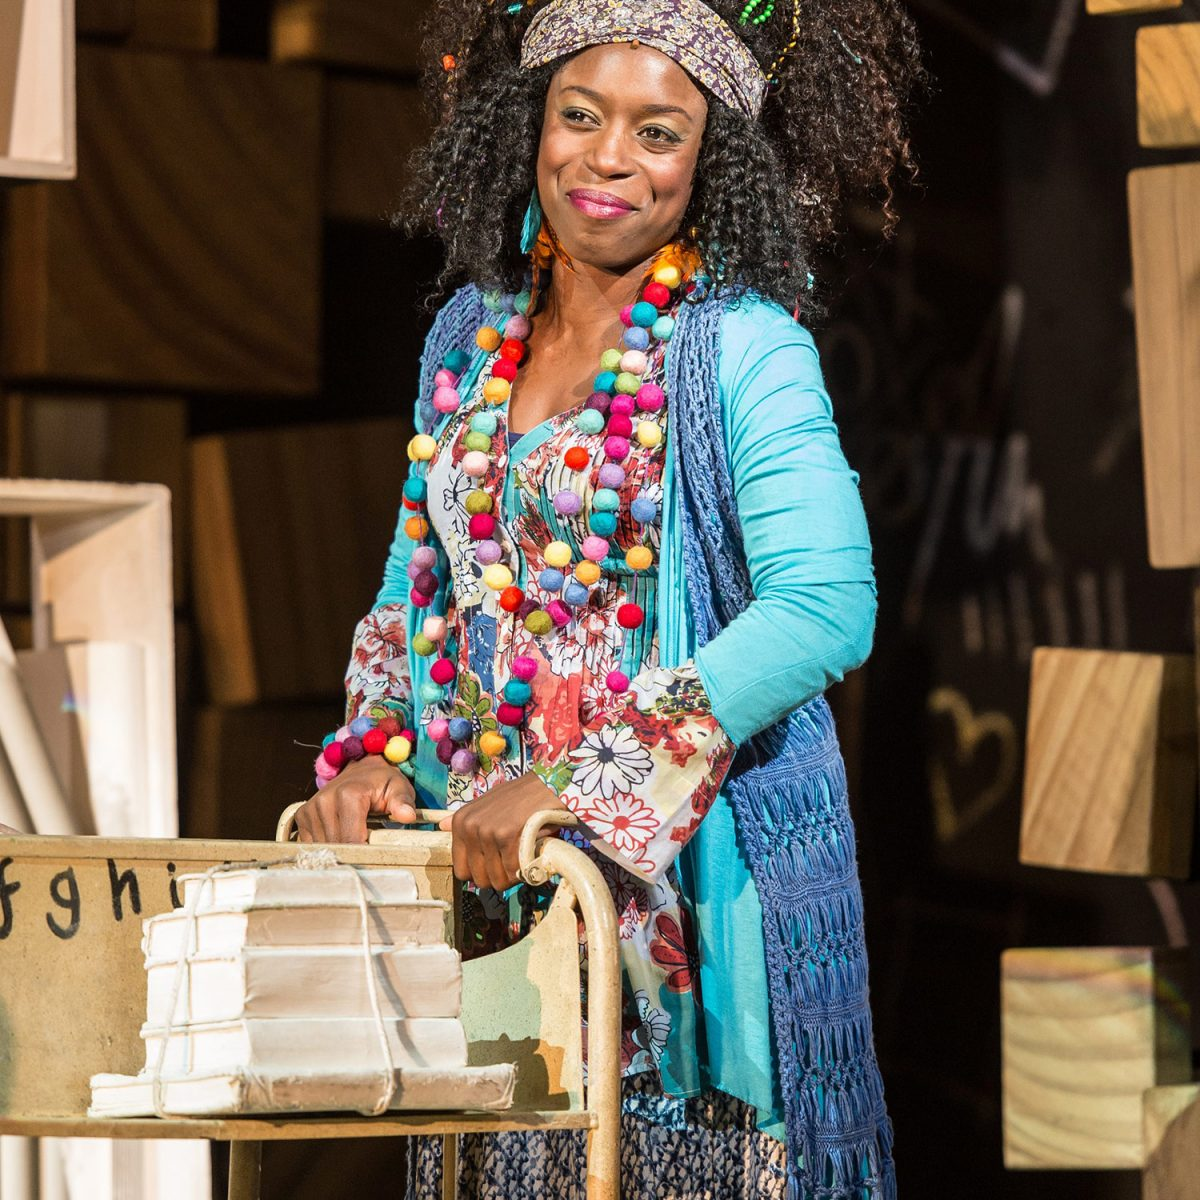 RSC's Matilda performance at the Curve Theatre